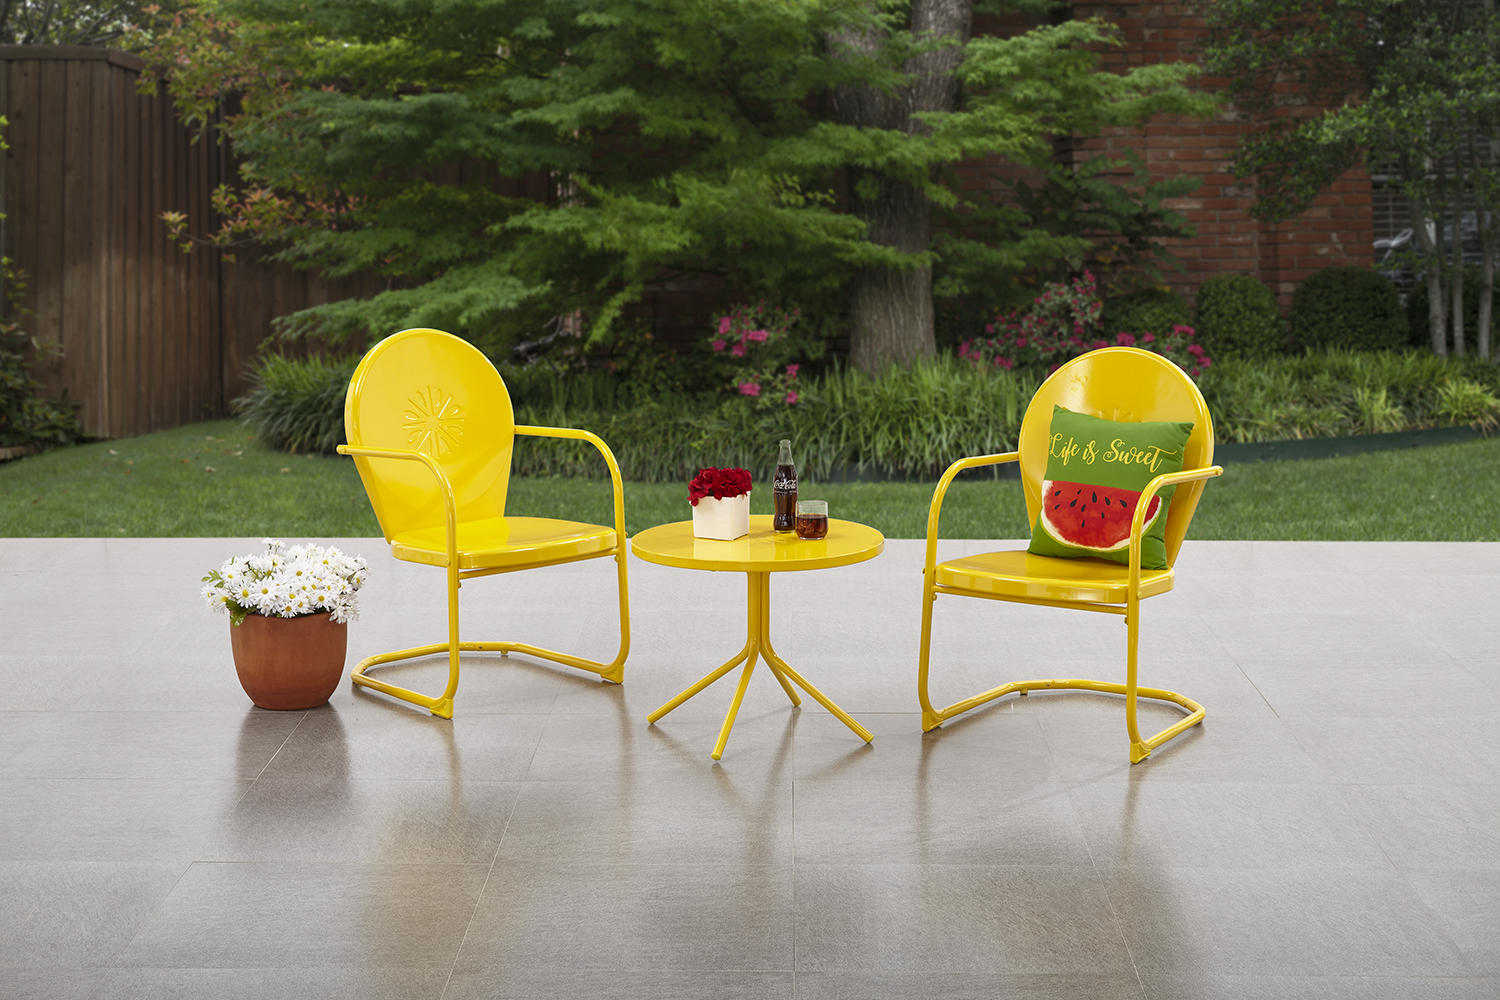 Ordinaire Mainstays Retro C Spring 3 Piece Metal Outdoor Bistro ...